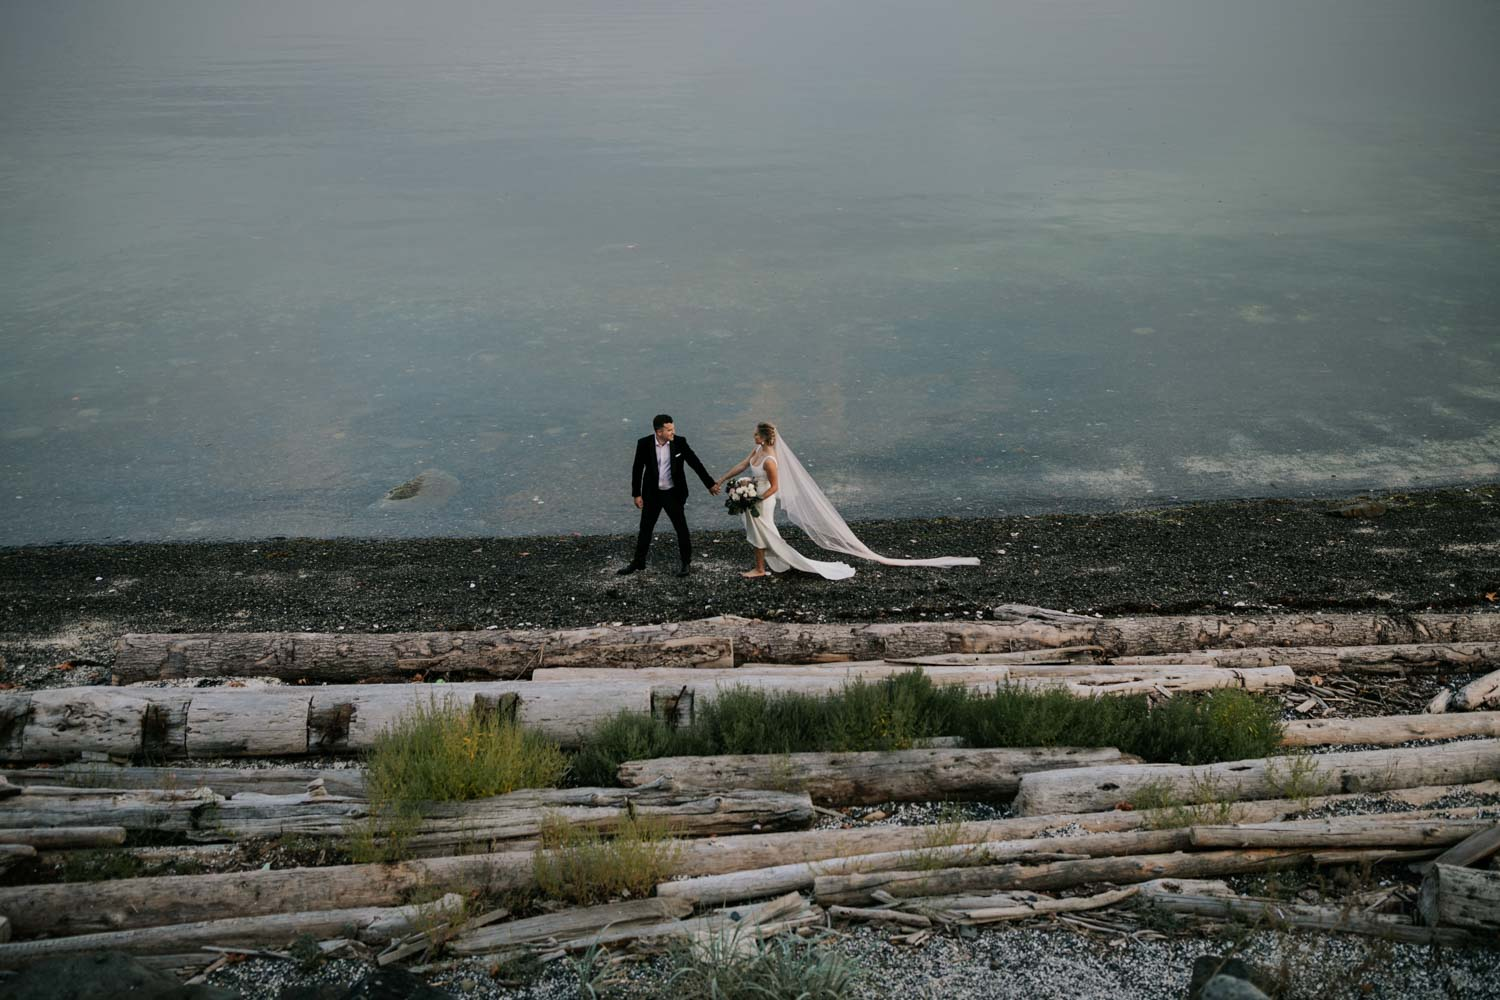 Creative Vancouver Island Wedding Photographer based in Victoria